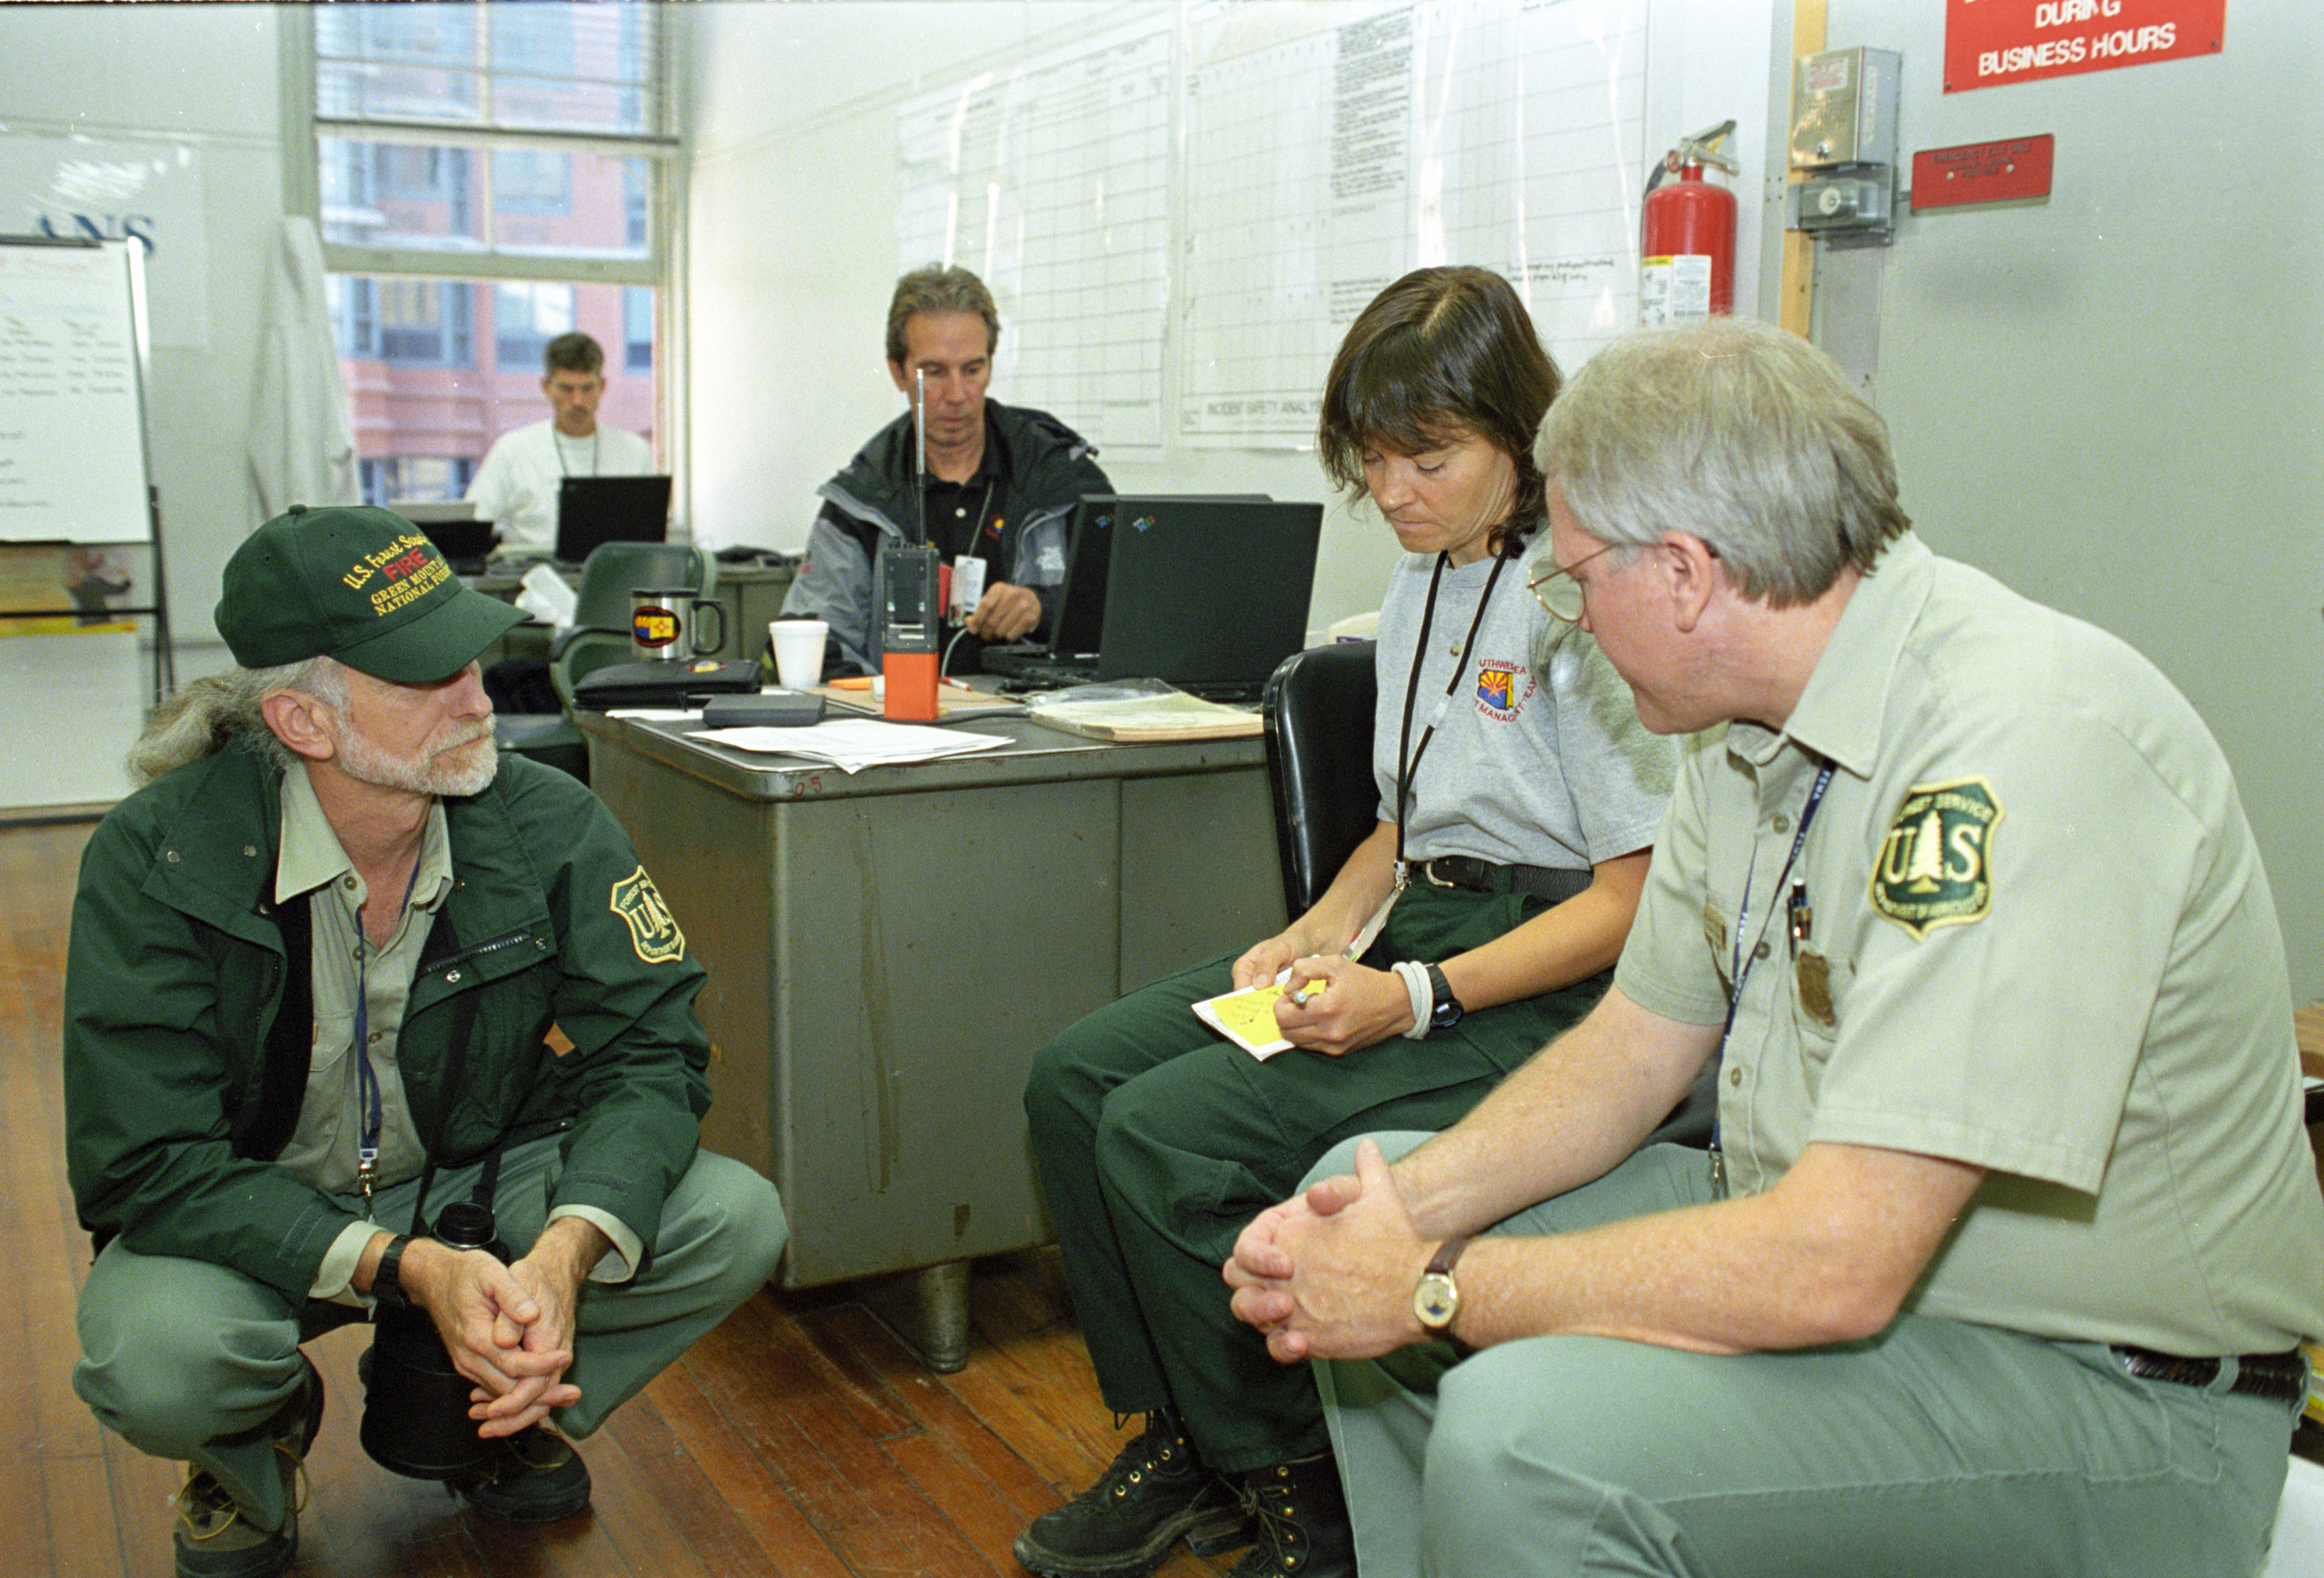 Forest Service and incident management employees in a room discussing things.